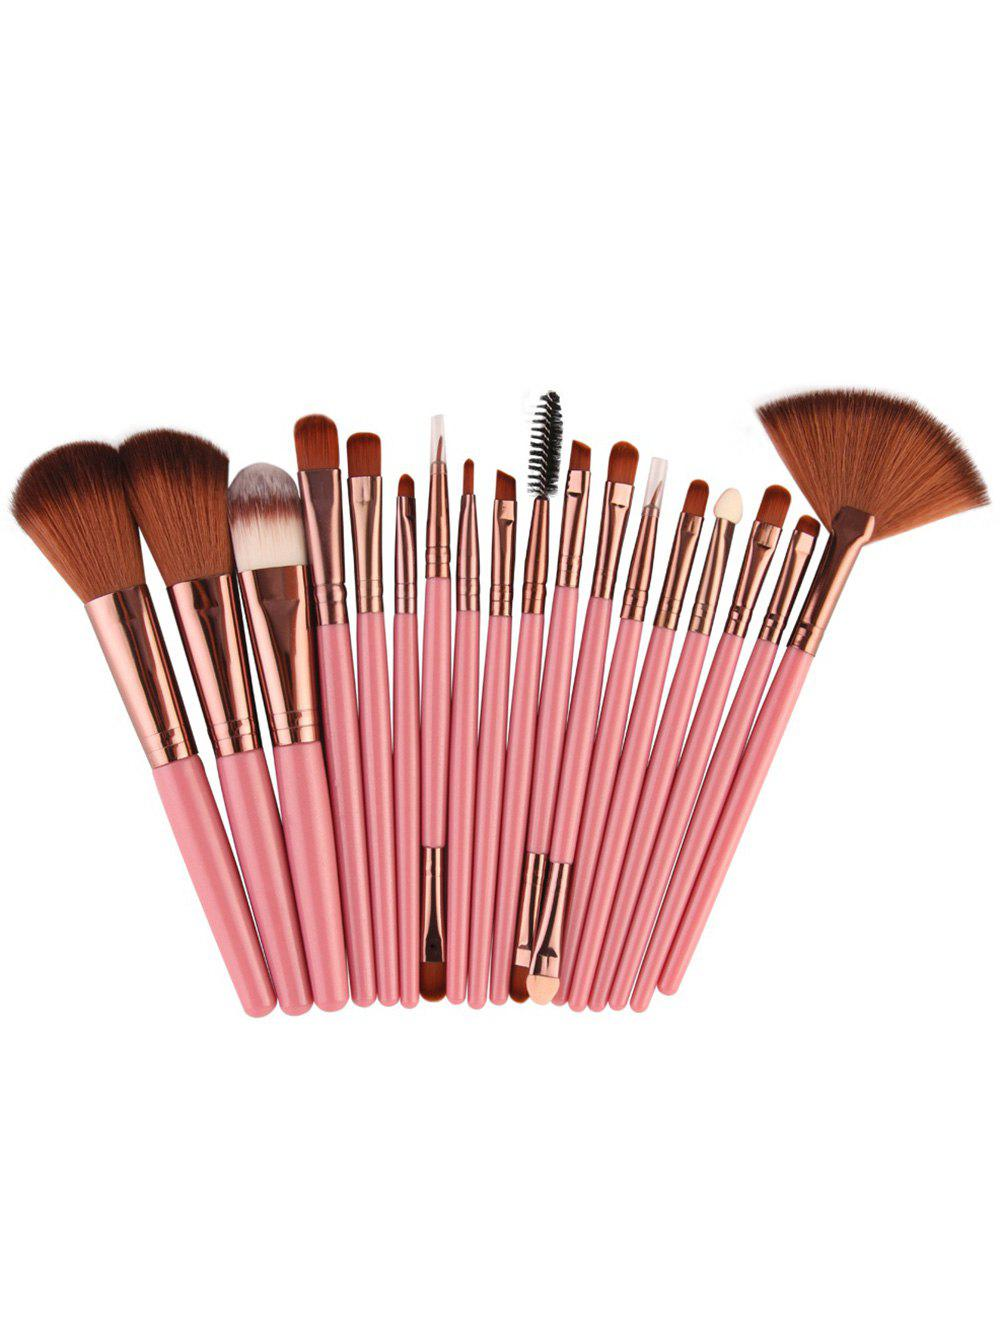 18Pcs Facial Multipurpose Makeup Brushes Kit - PINKISH BROWN